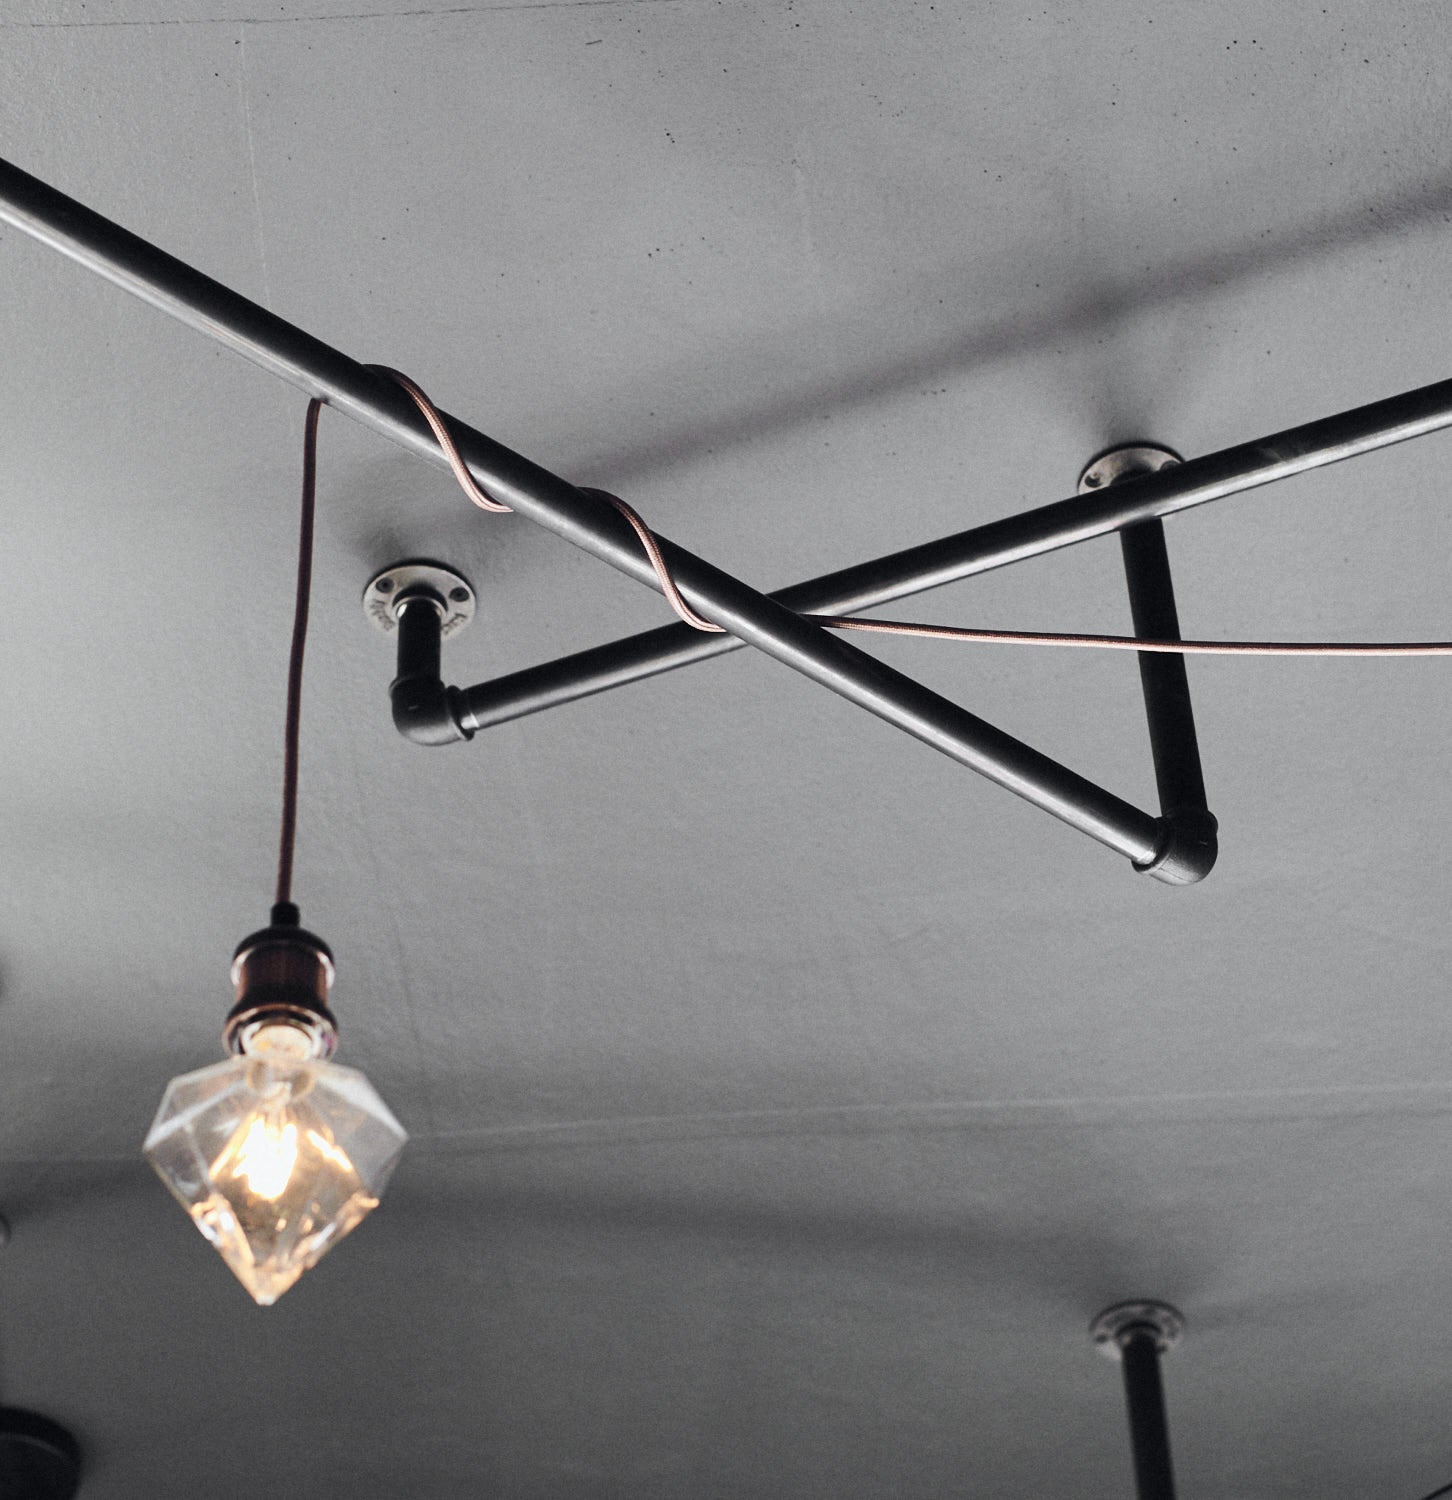 industrial design lightbulbs and lamp rails for ceiling attachment